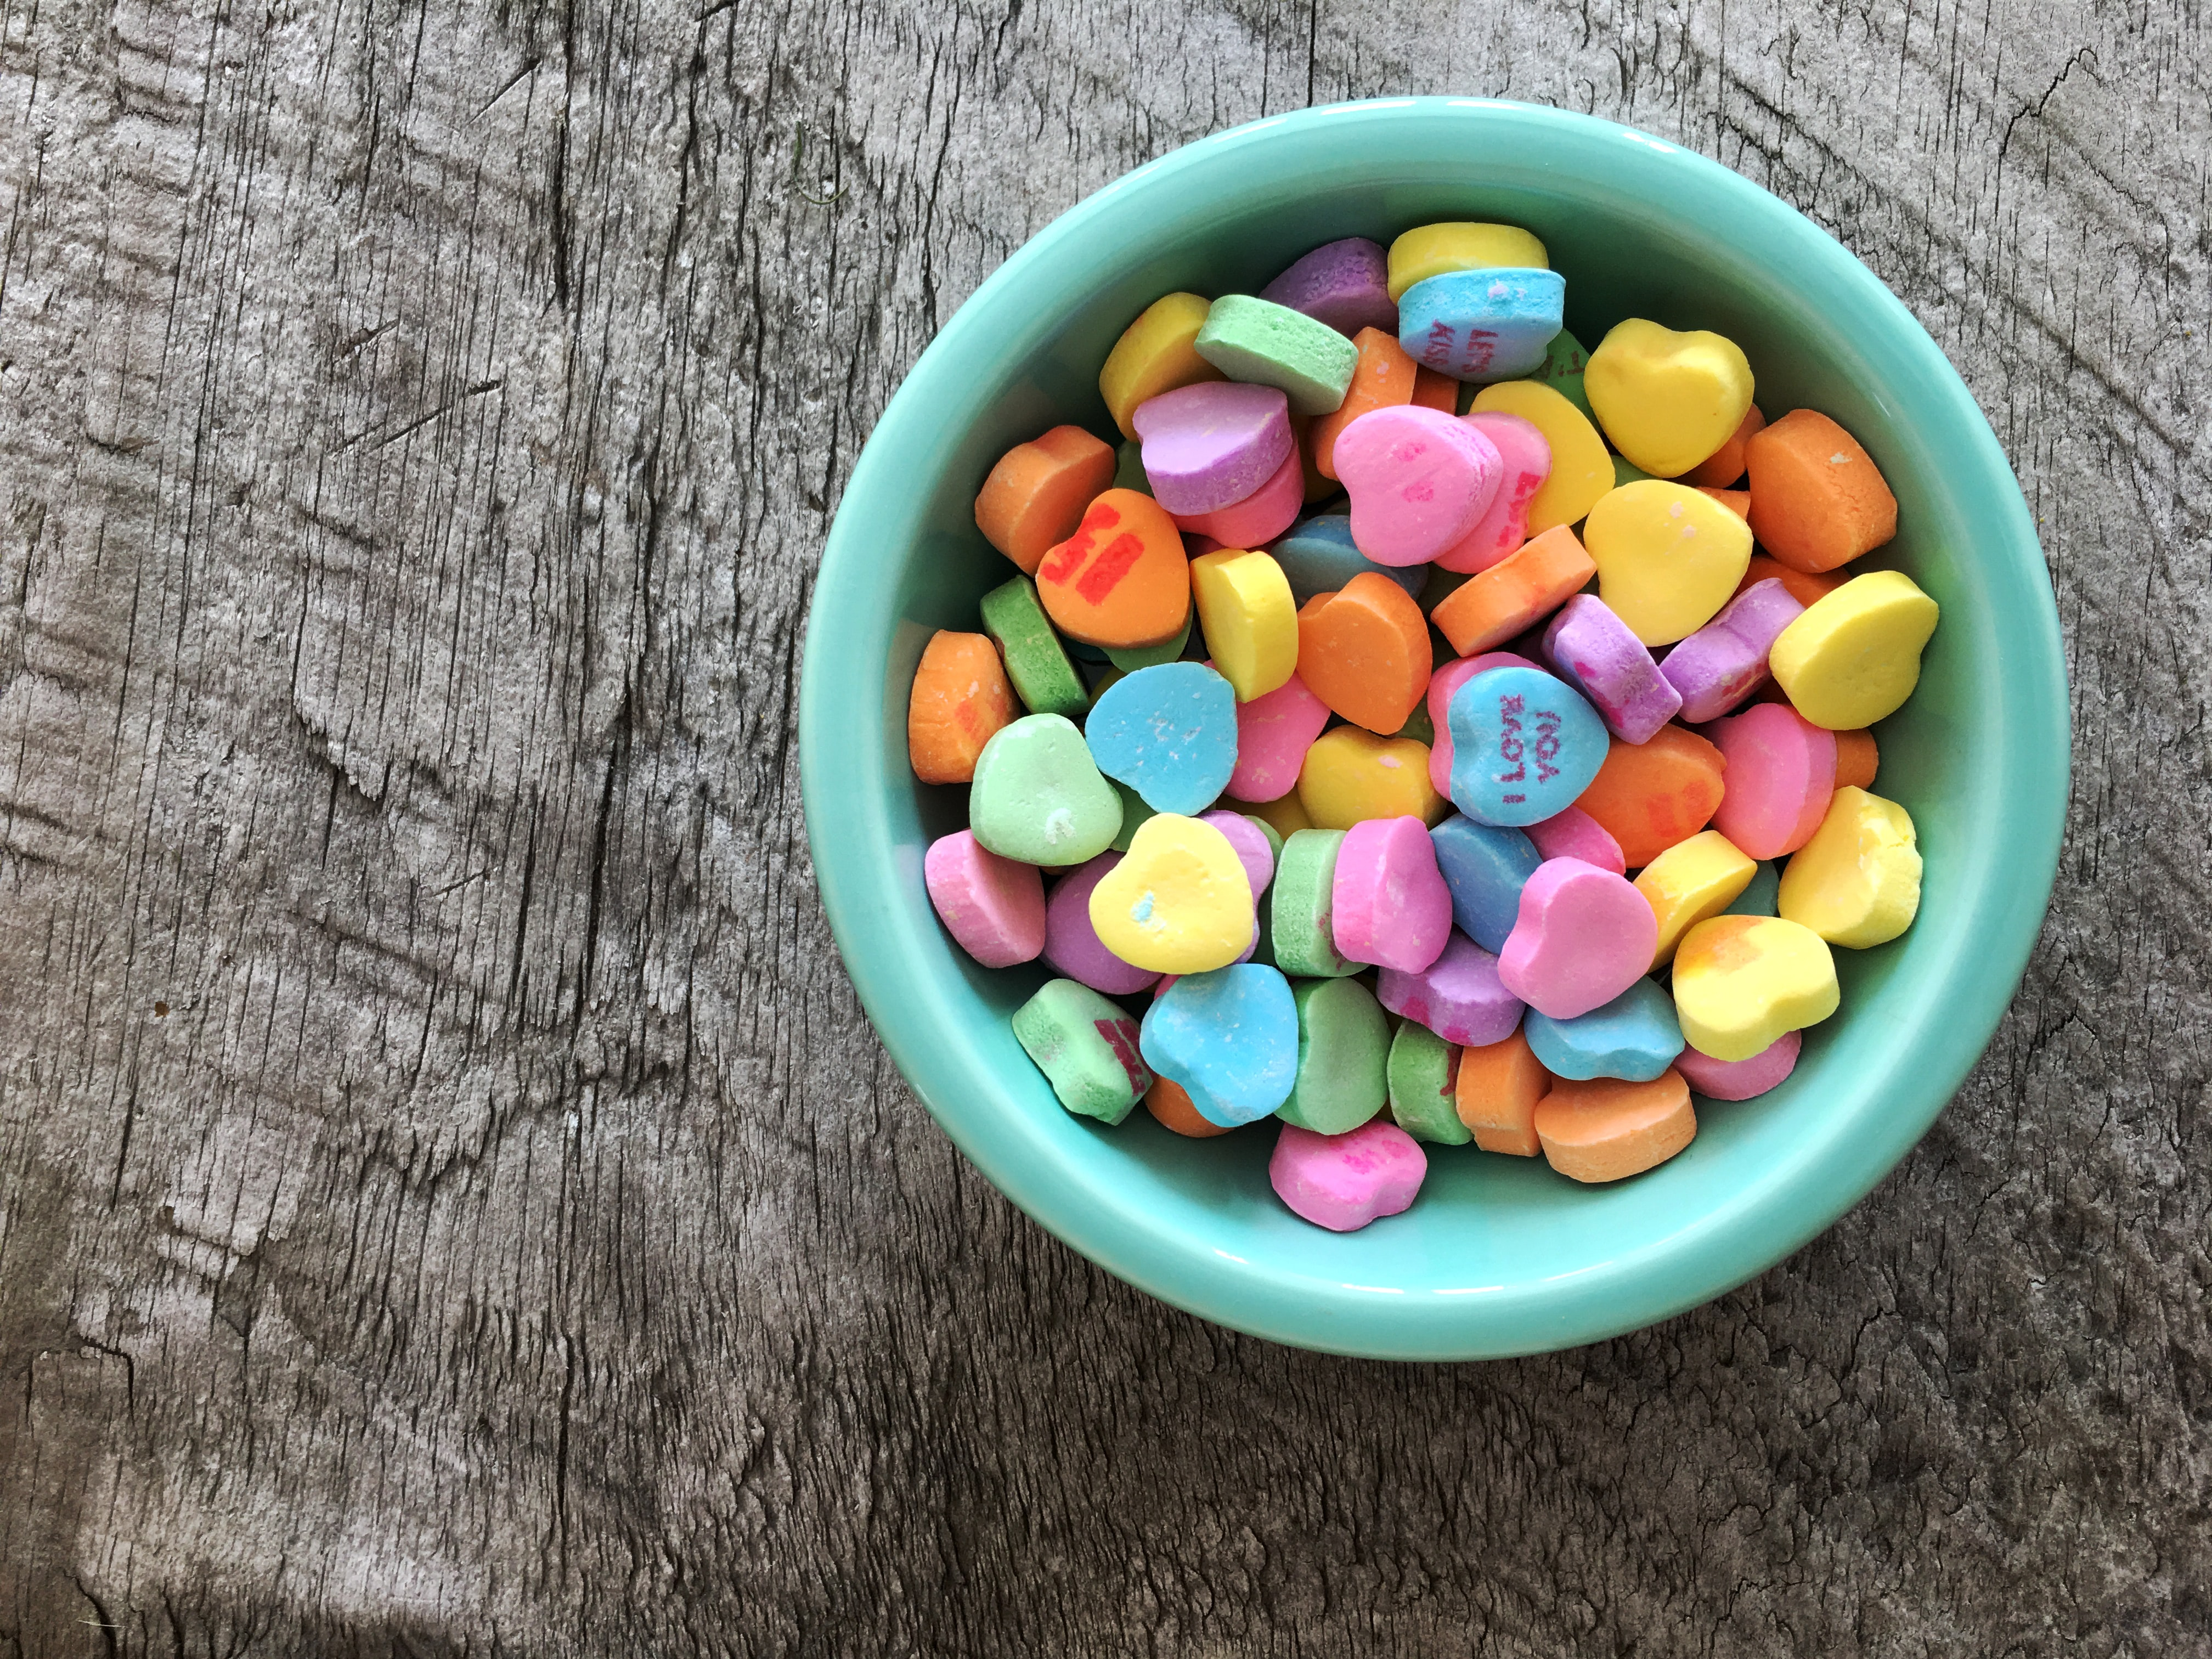 assorted-color heart shape candies on teal bowl